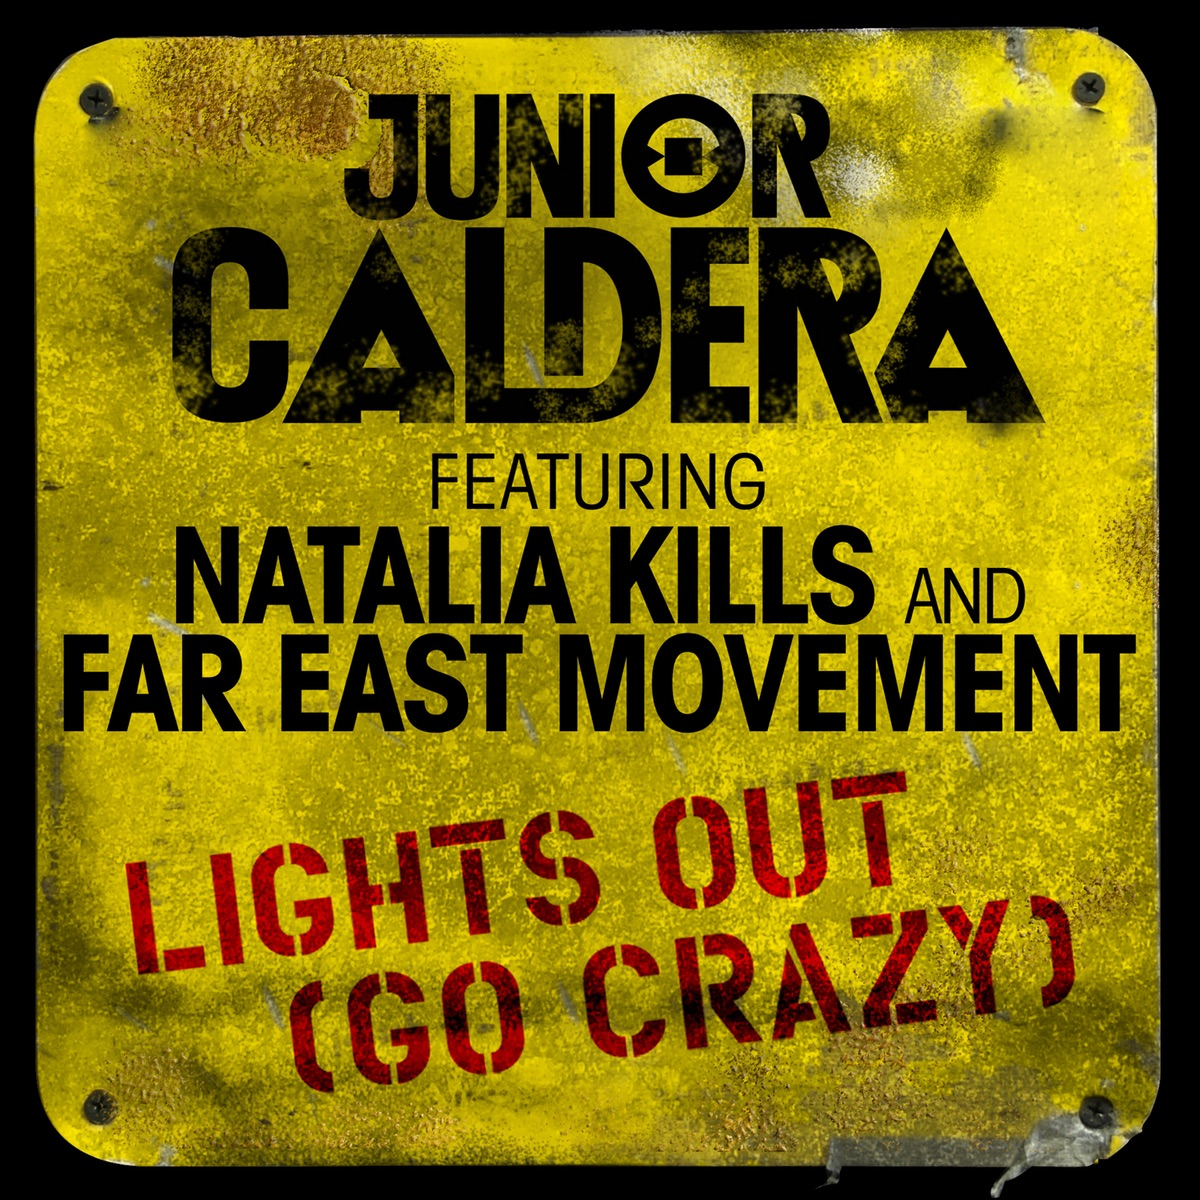 Junior caldera ft